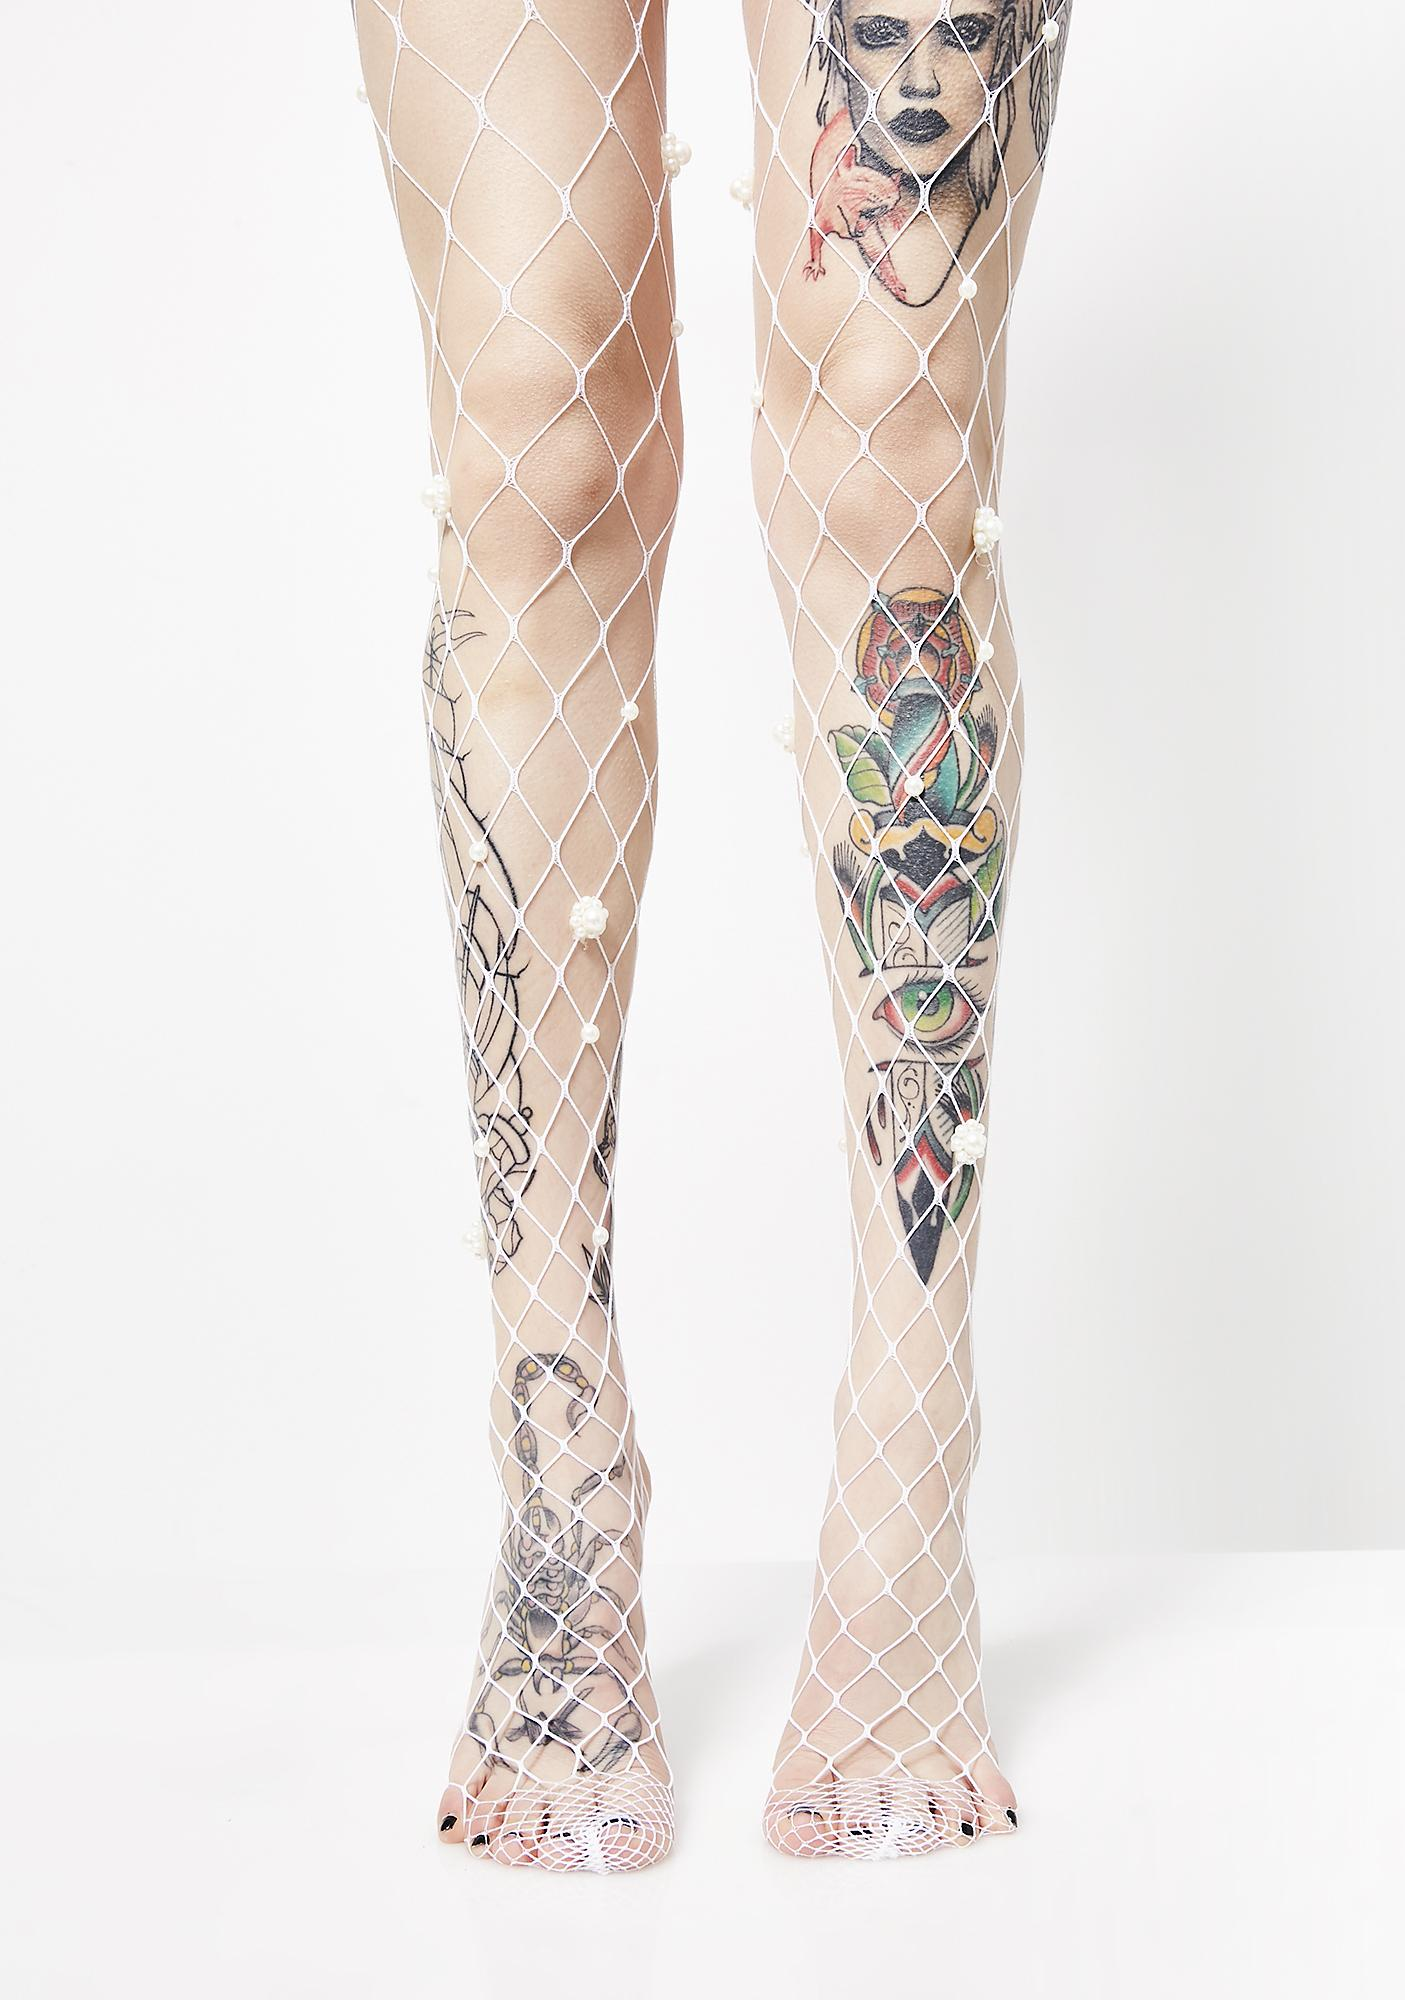 Lap Of Luxury Fishnet Tights